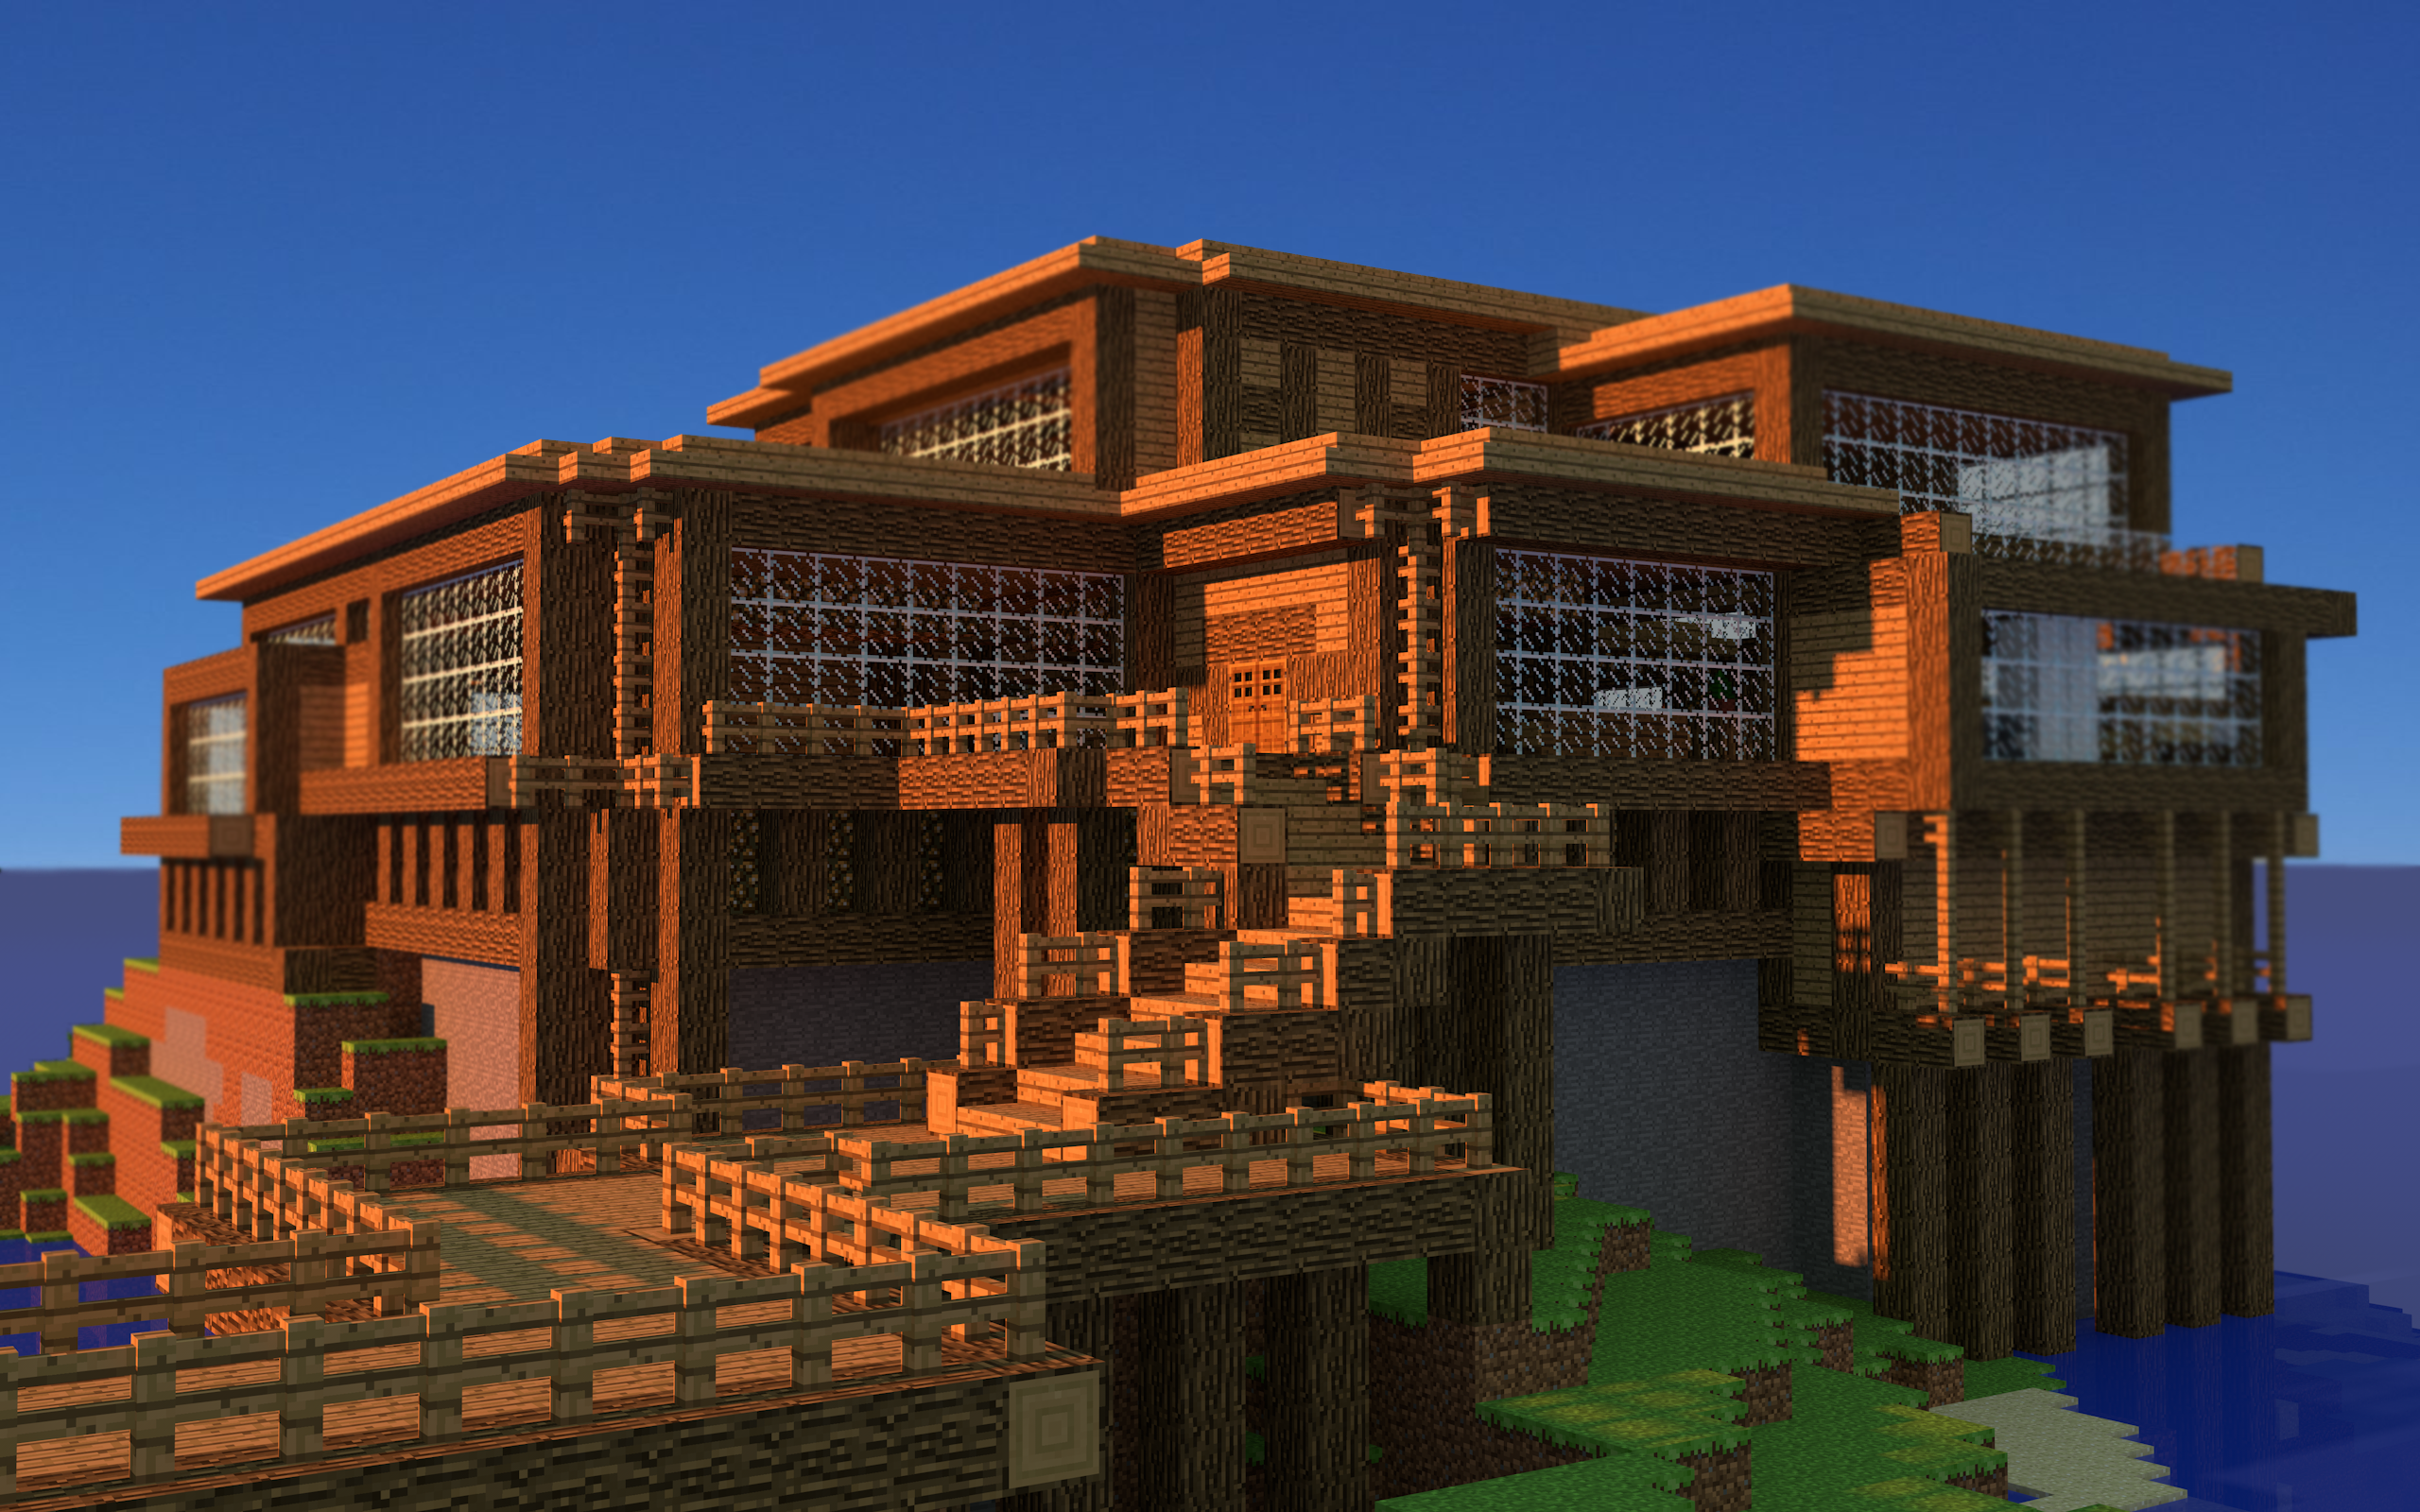 Free Download Minecraft Beach House Wallpaper 2560x1600 For Your Desktop Mobile Tablet Explore 43 Beach House Desktop Wallpaper Beach Home Wallpaper 3d Beach Wallpapers For Desktop Free Beach Mansion Wallpaper